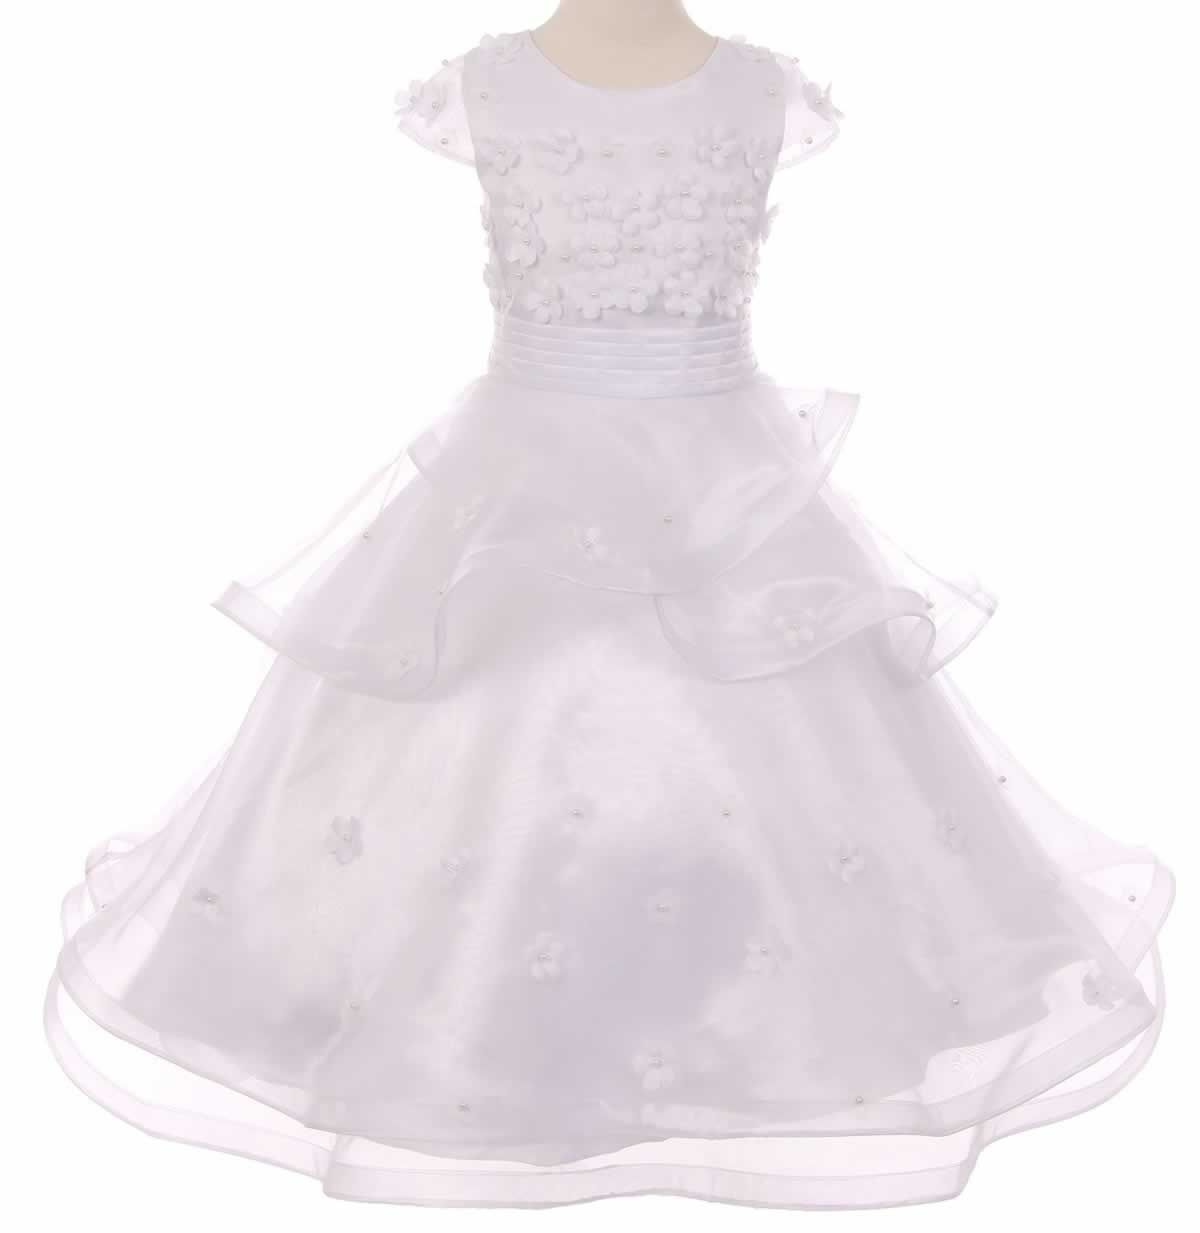 Shimmery white fairy dress for special occasions fairy dress